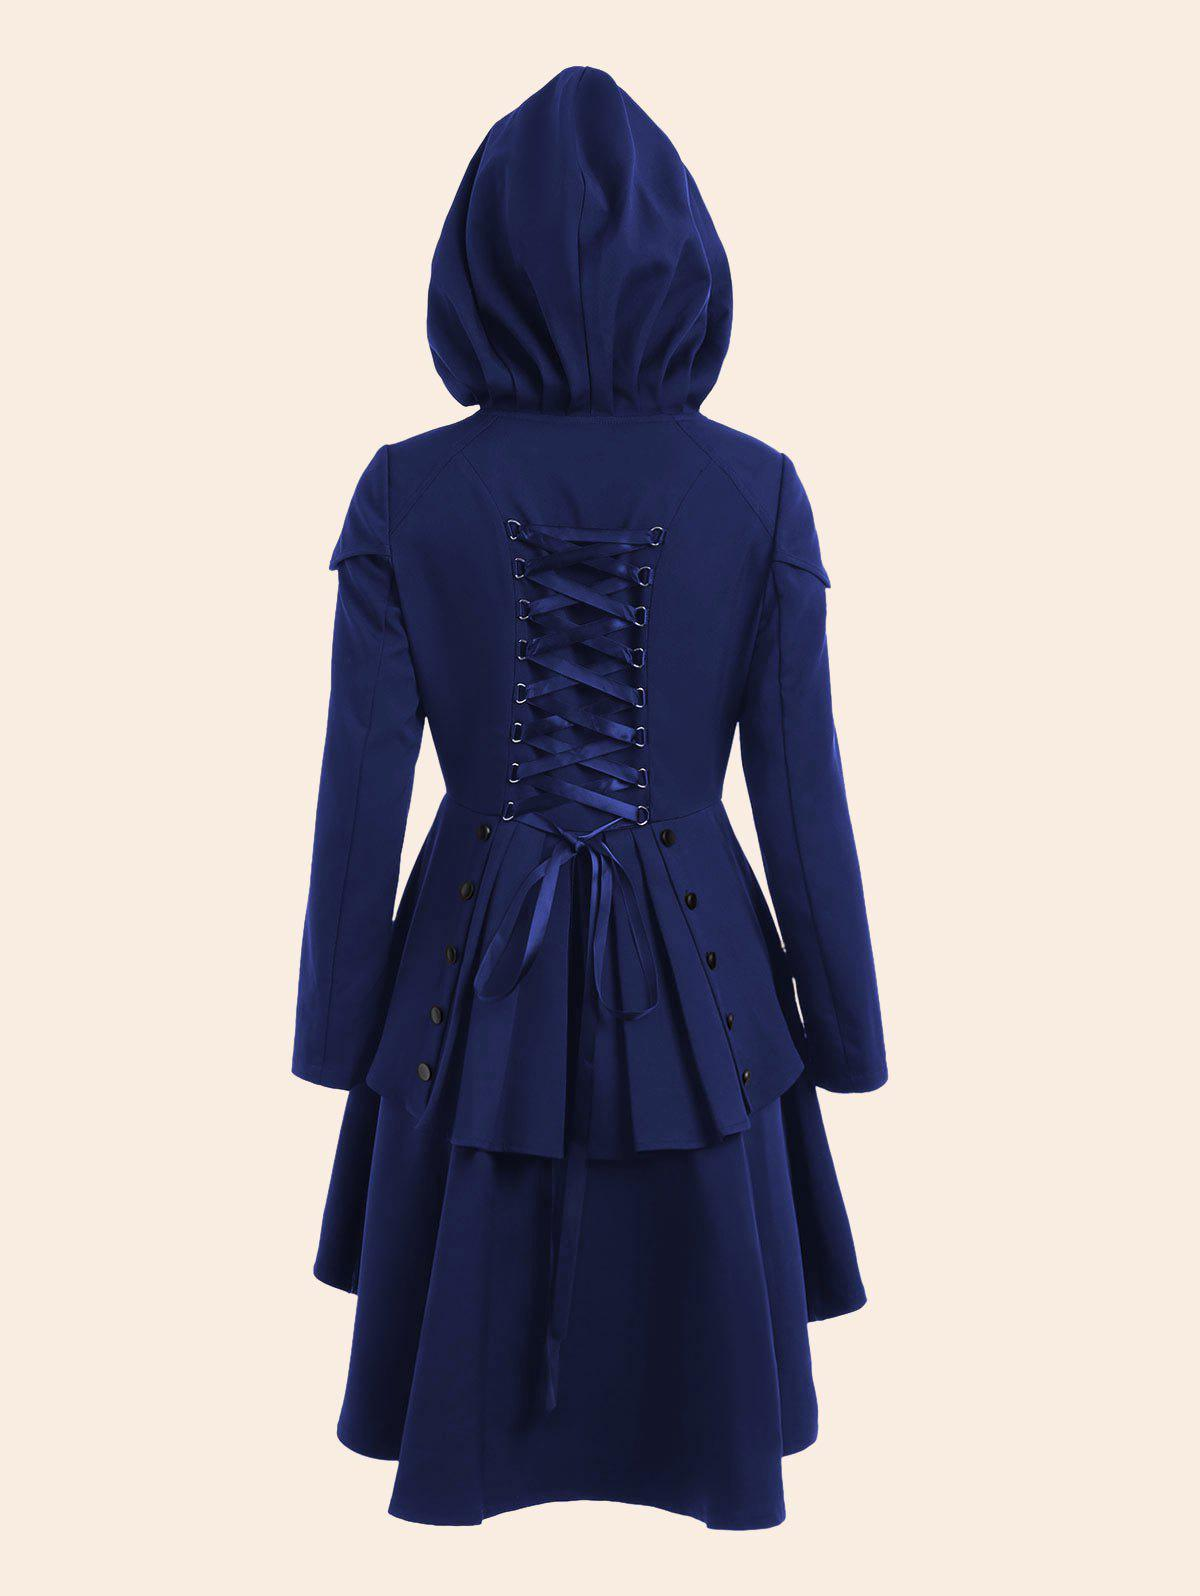 Lace Up High Low Plus Size Hooded CoatWOMEN<br><br>Size: 5XL; Color: BLUE; Clothes Type: Others; Material: Polyester; Type: High Waist; Shirt Length: Regular; Sleeve Length: Full; Collar: Hooded; Closure Type: Single Breasted; Pattern Type: Solid; Embellishment: Criss-Cross; Style: Gothic; Season: Fall,Spring; With Belt: No; Weight: 0.7500kg; Package Contents: 1 x Coat;